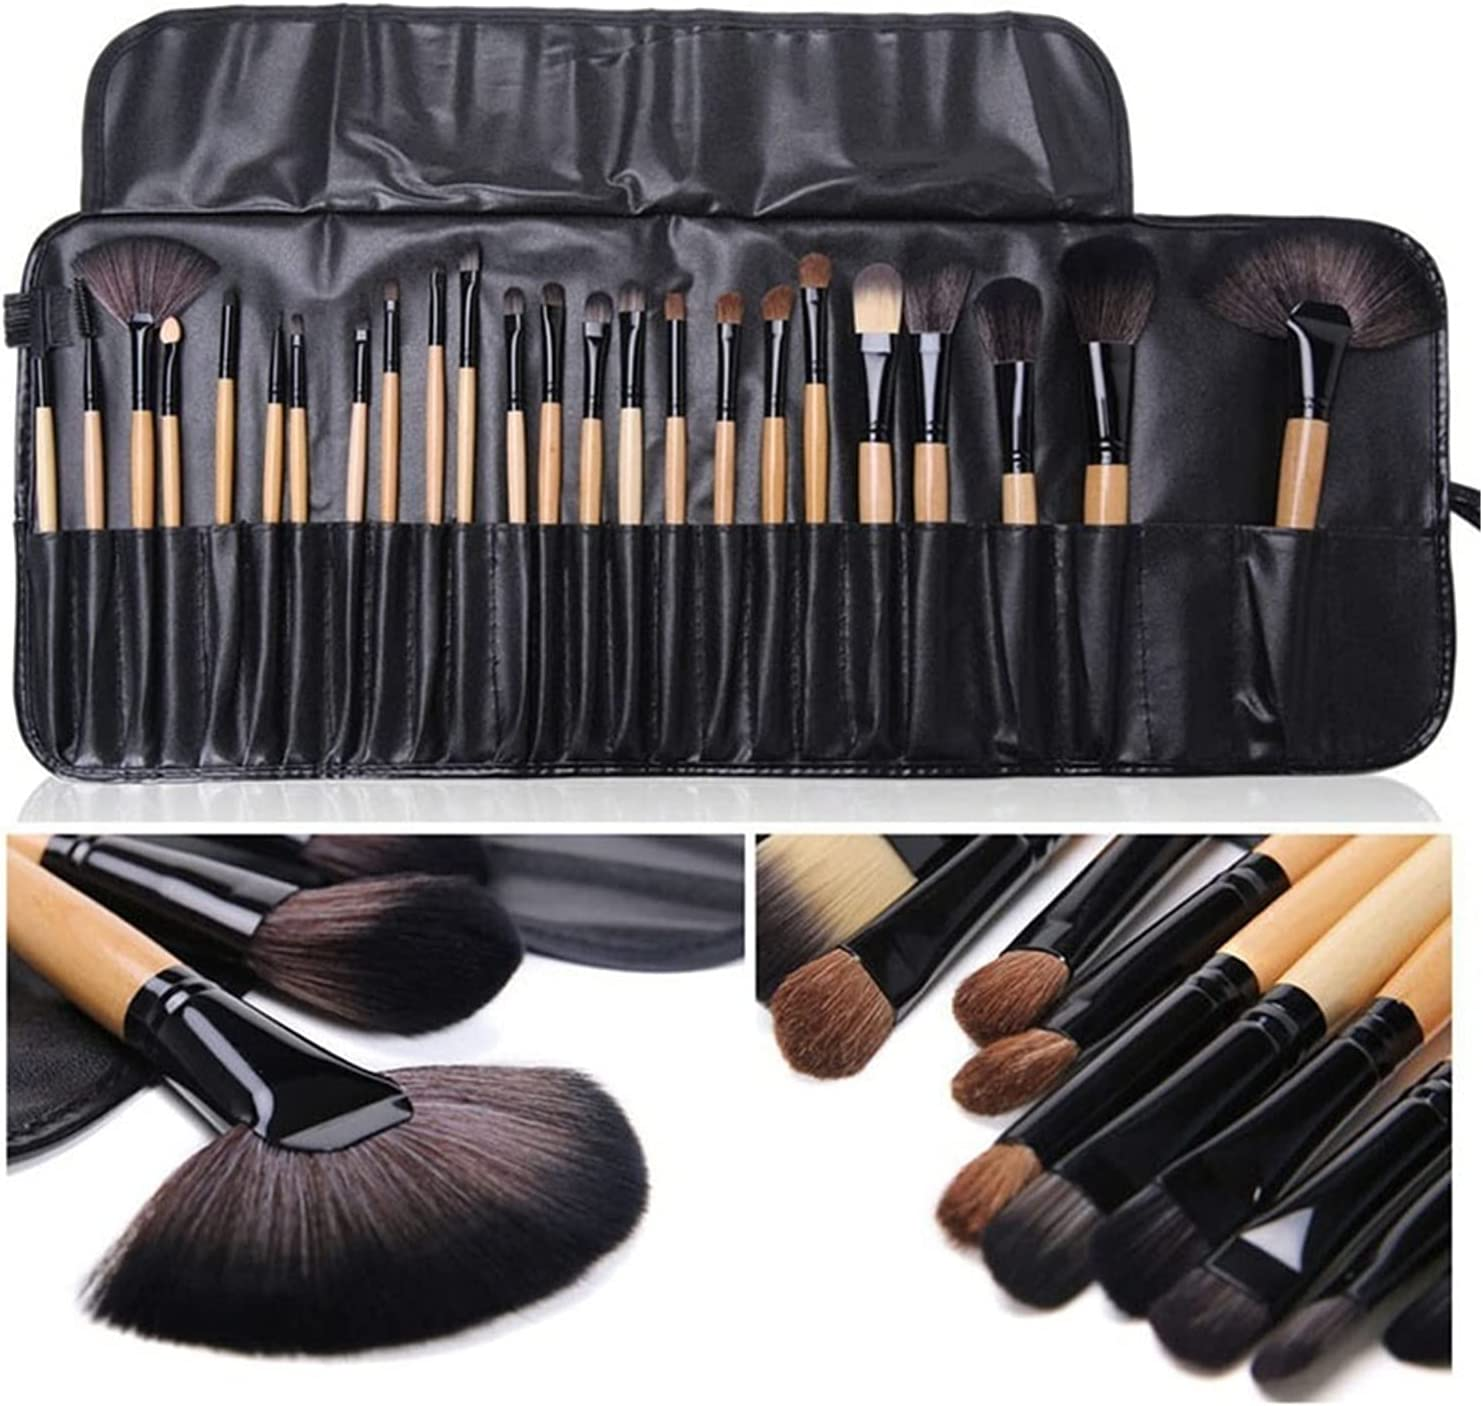 Gift Bag of 24 pcs OFFicial mail order Makeup Sets outlet Brush Cosmetics Professional Brus